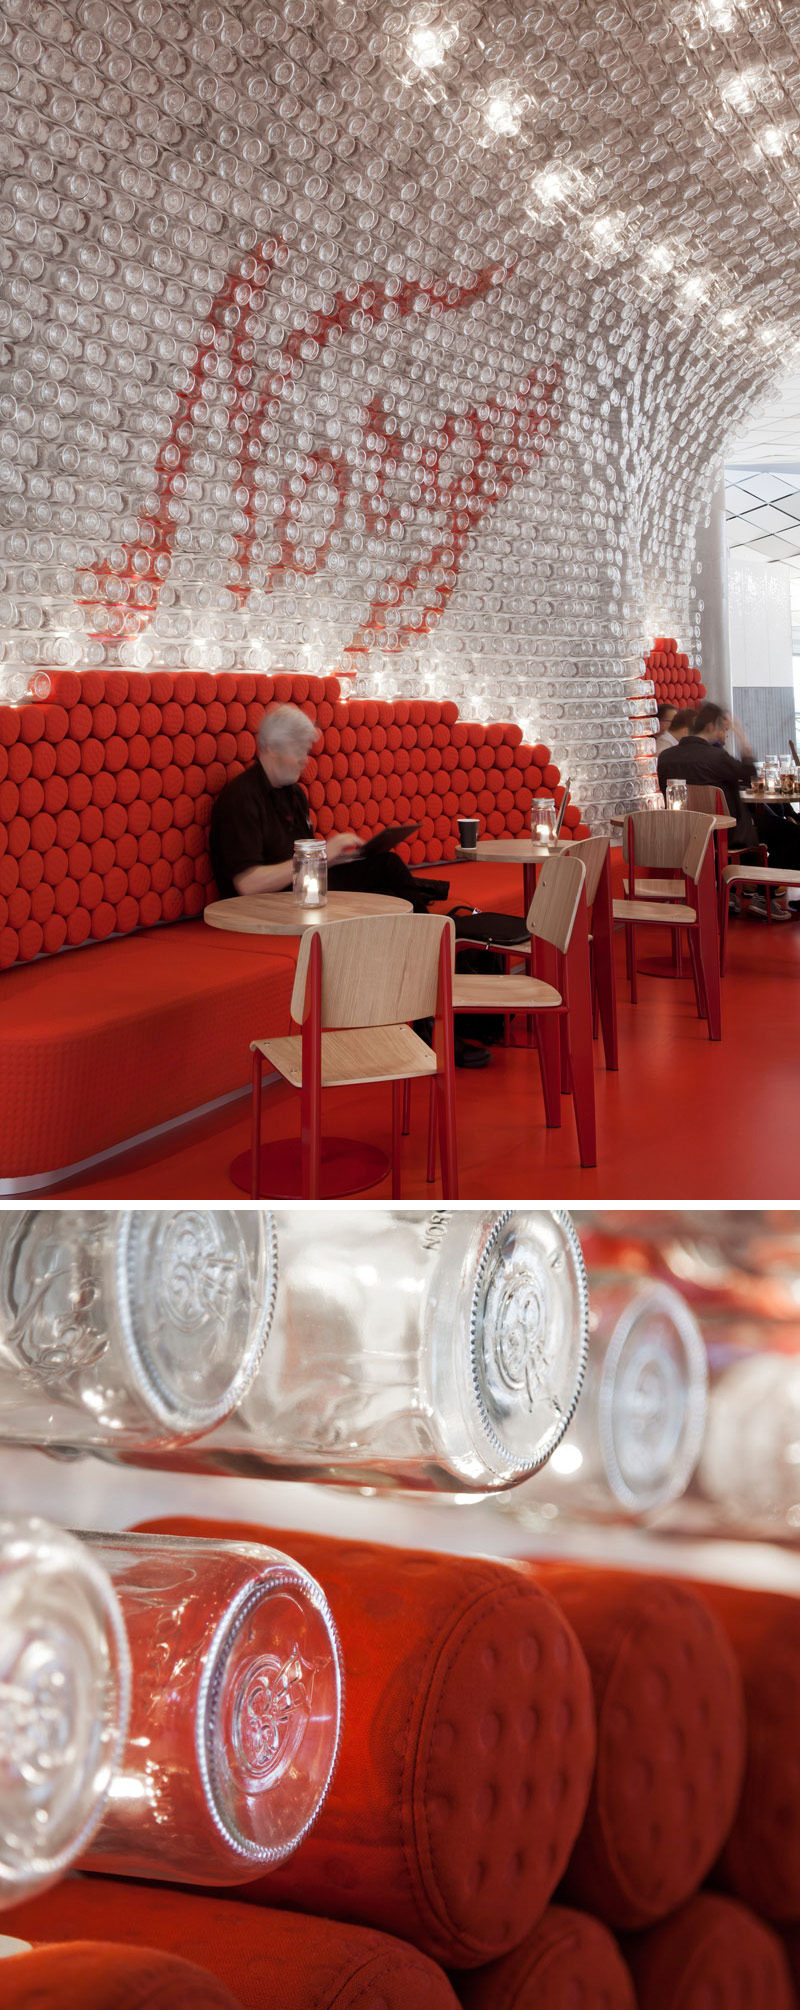 Over 4,000 glass jars were reused to the cover the ceiling and curved back wall of this modern airport bar in Oslo.